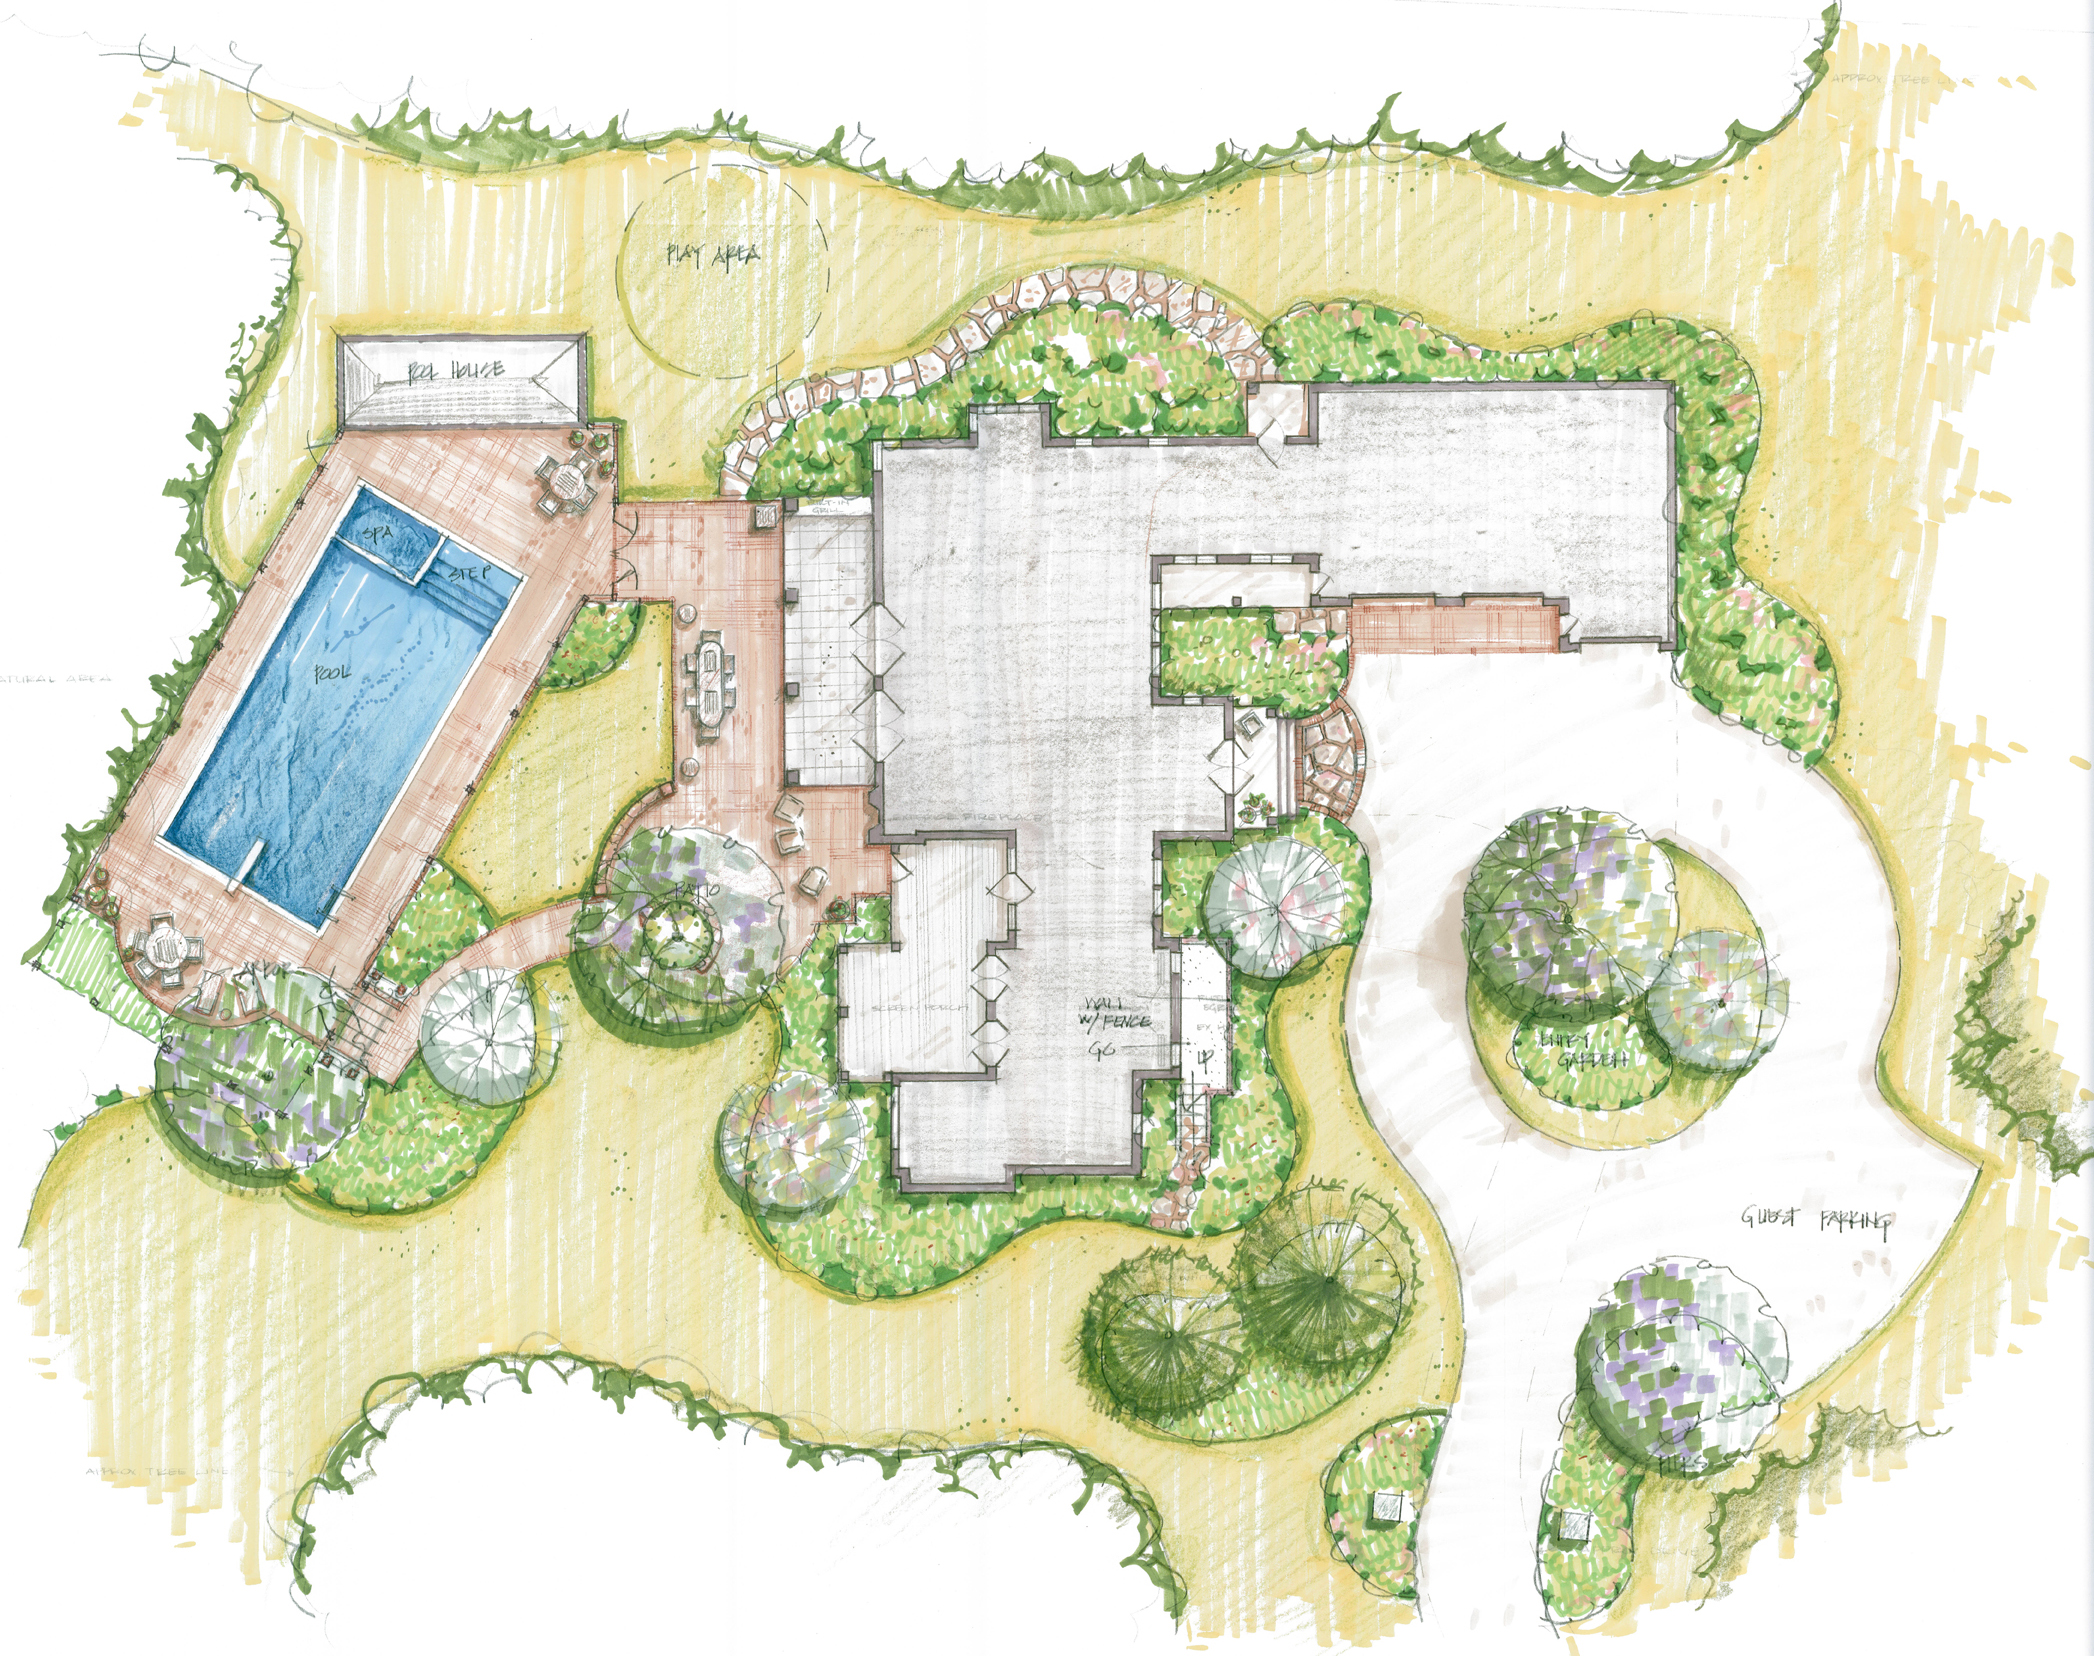 5 simple reasons to plan your landscape design landscape for Simple house garden design